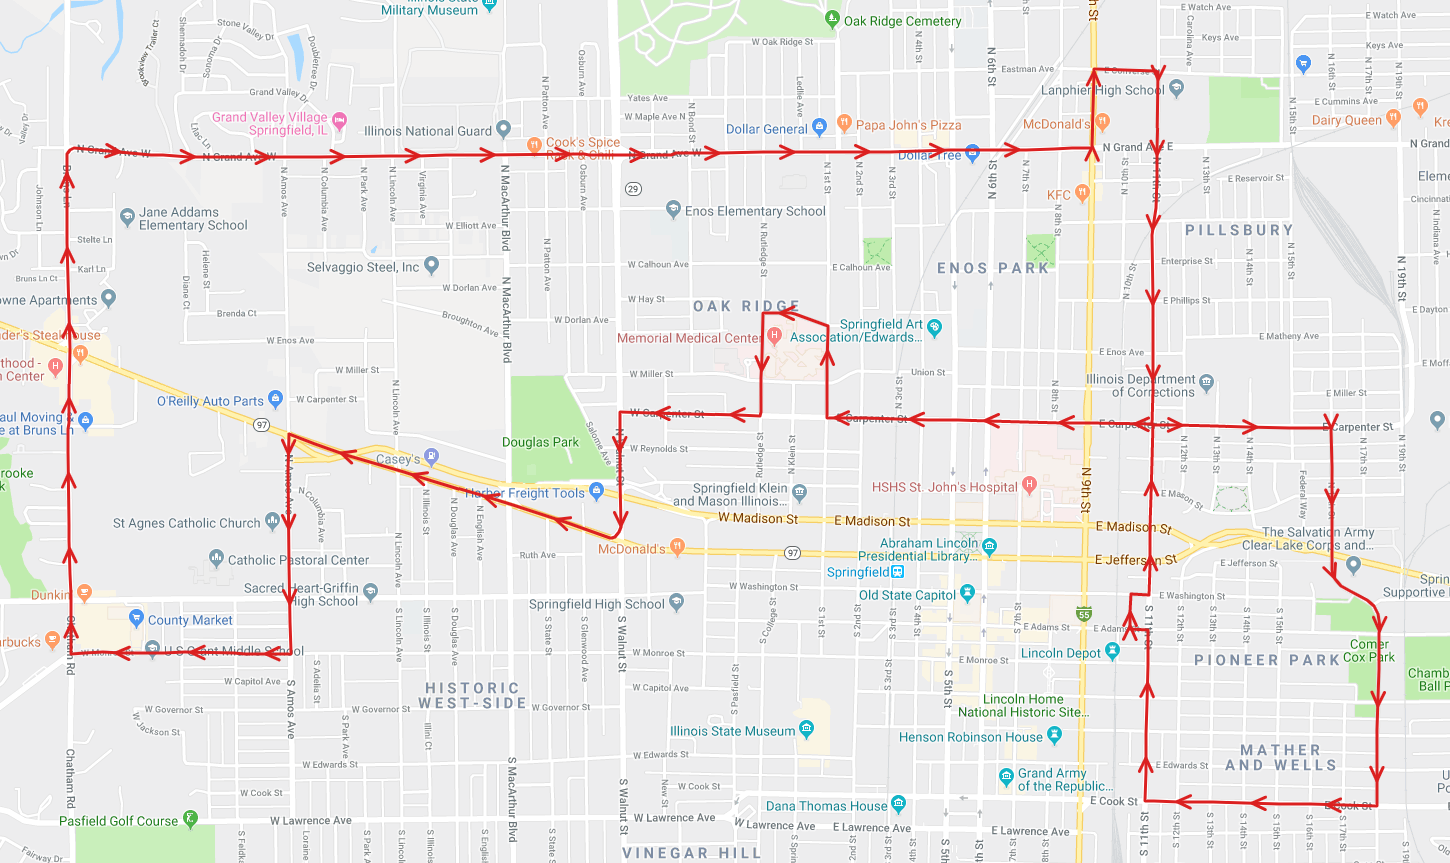 The new Route 5 pattern starting on August 19th, 2019.